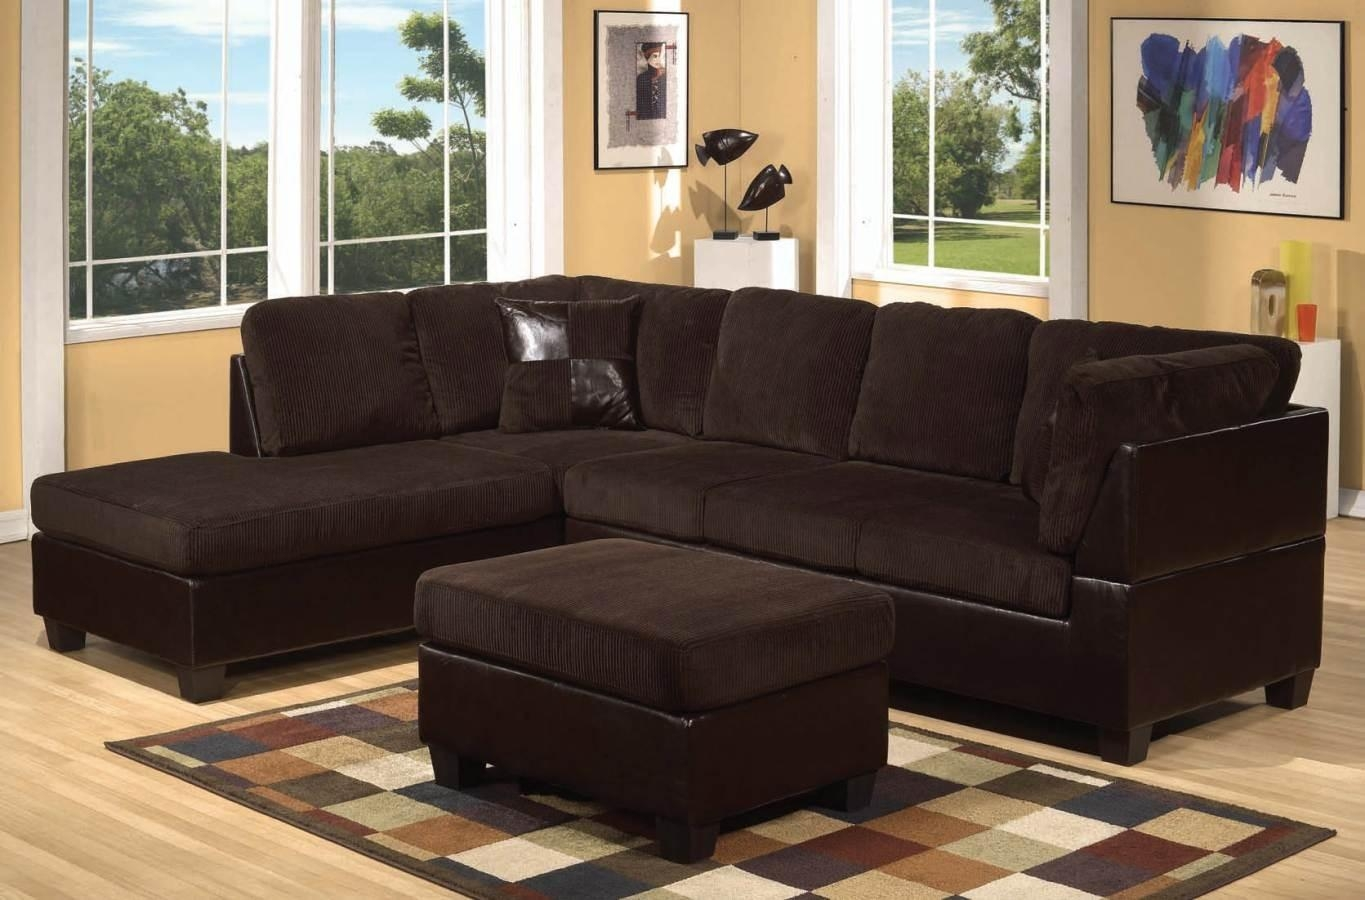 Oversized Living Room Sets Living Room Design And Living Room Ideas For Sectional Sofa With Oversized Ottoman (Image 13 of 20)